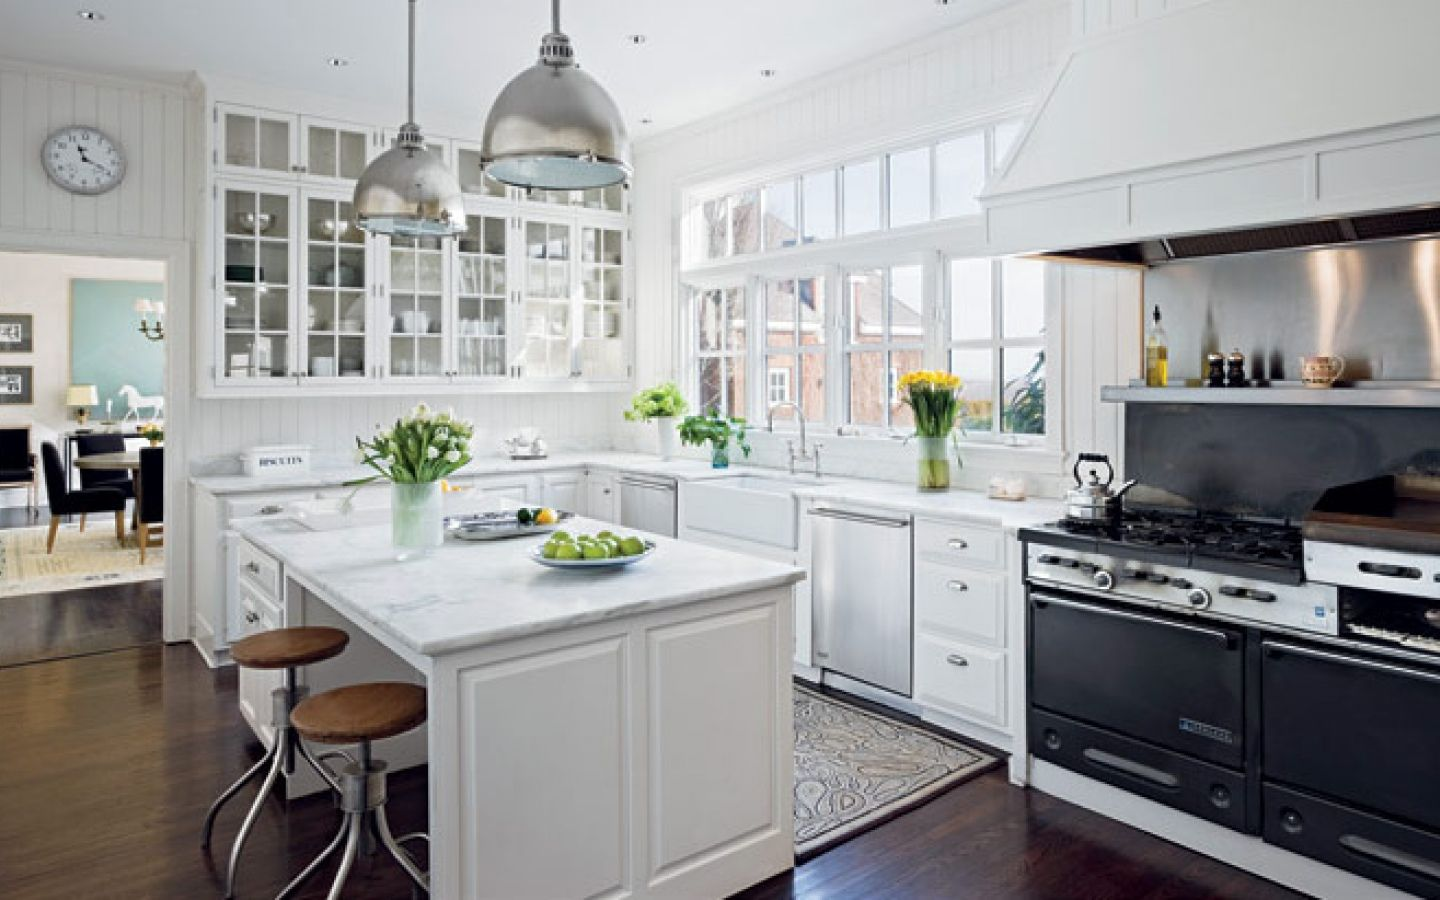 Modern Country Kitchen Decor Picture Of Modern Country Kitchen Design With White Cabinet